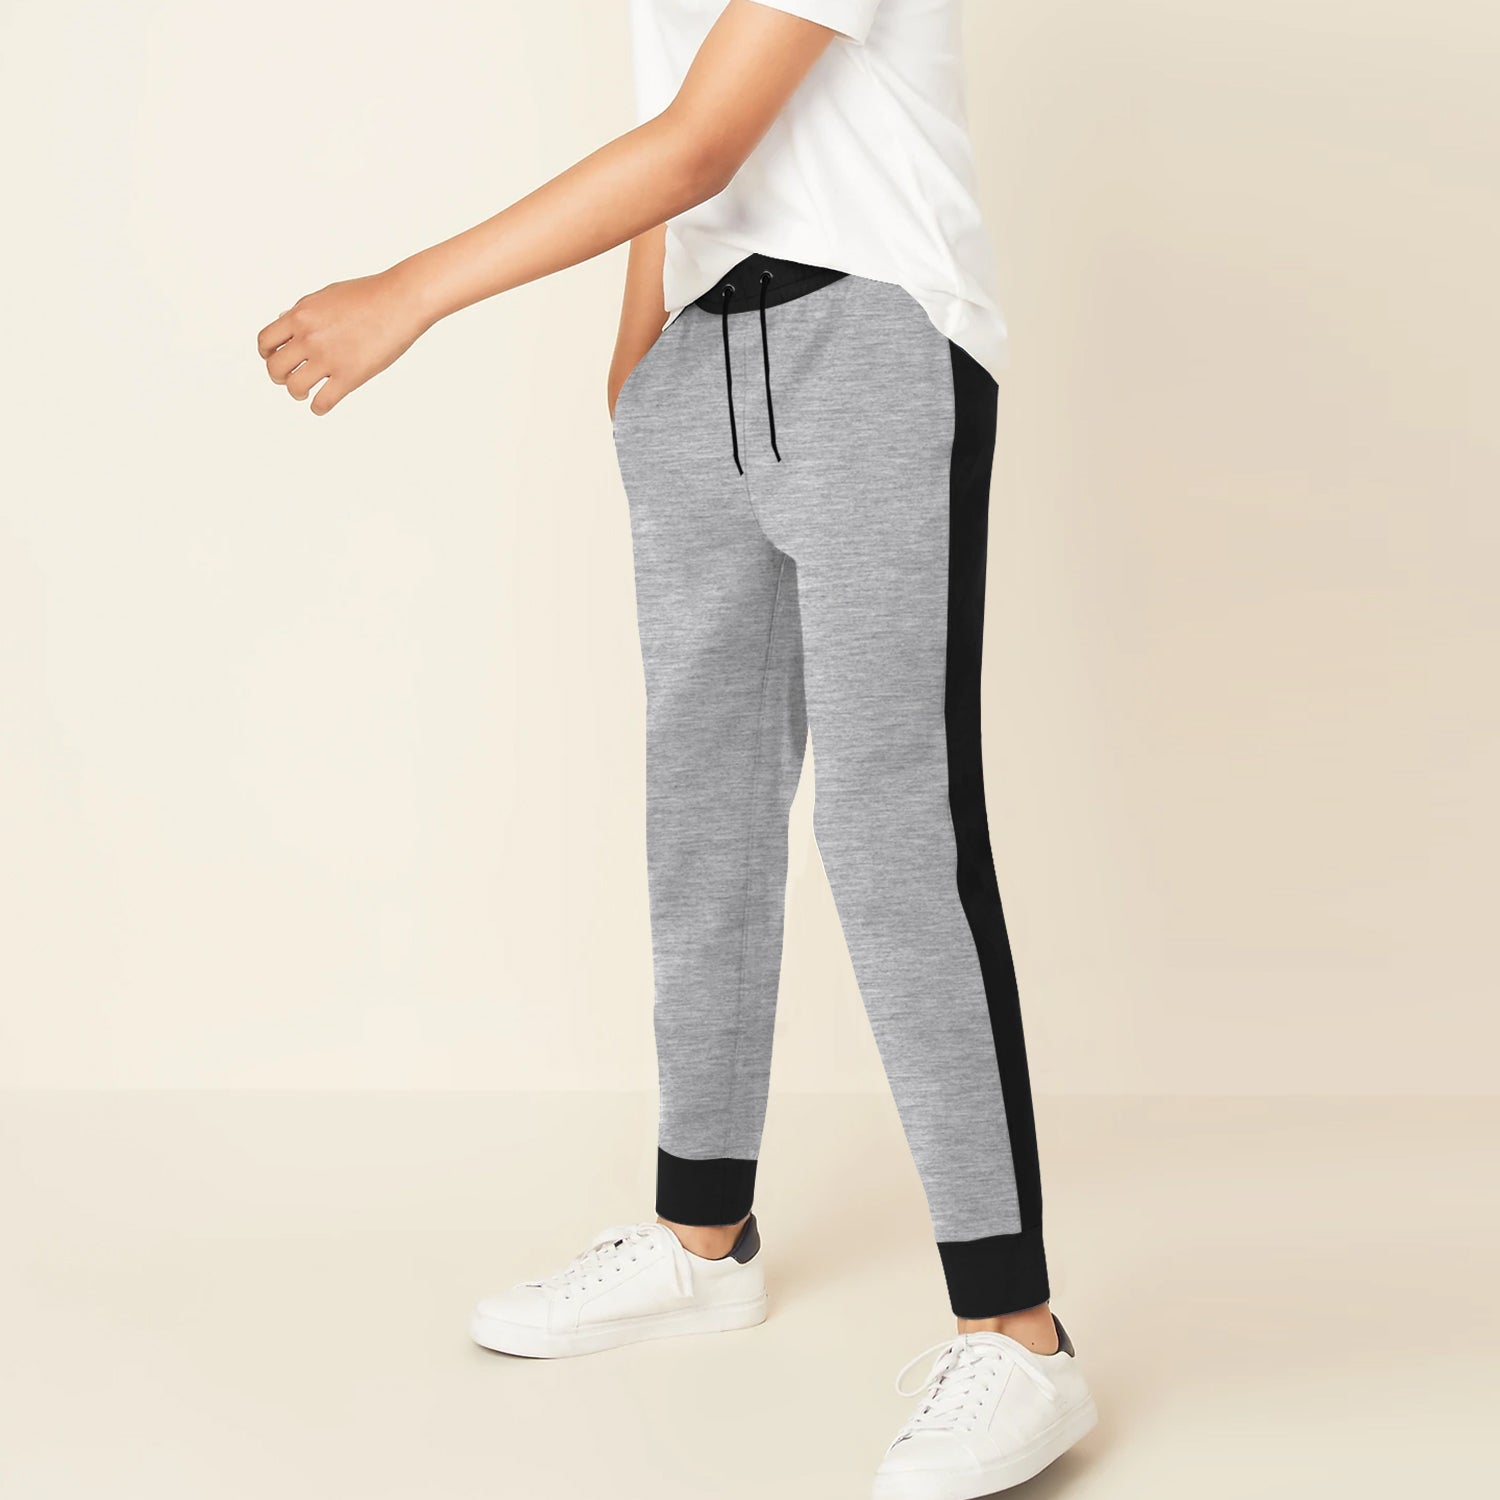 Uneek Single Jersey Jogger Trouser For Boys-Grey Melange & Black-BE10191